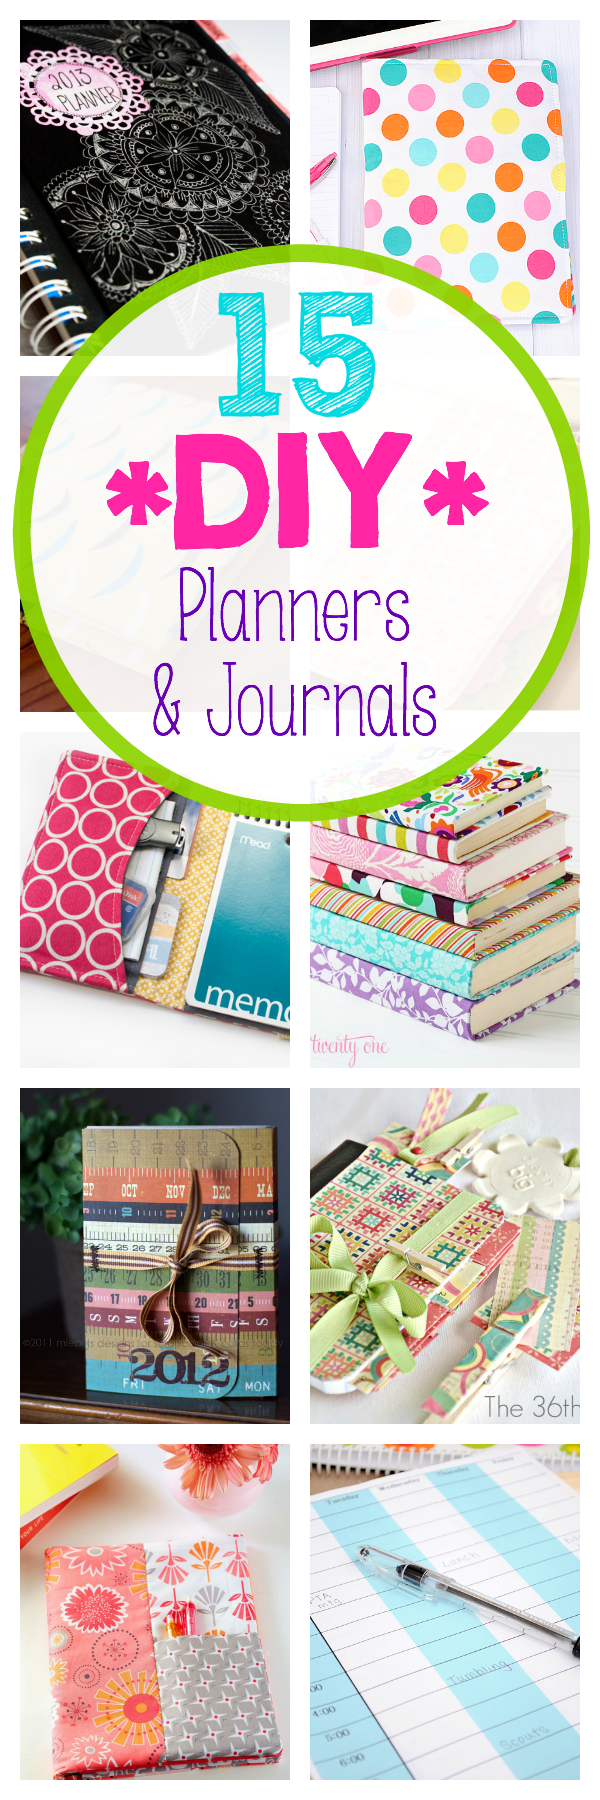 DIYPlanners